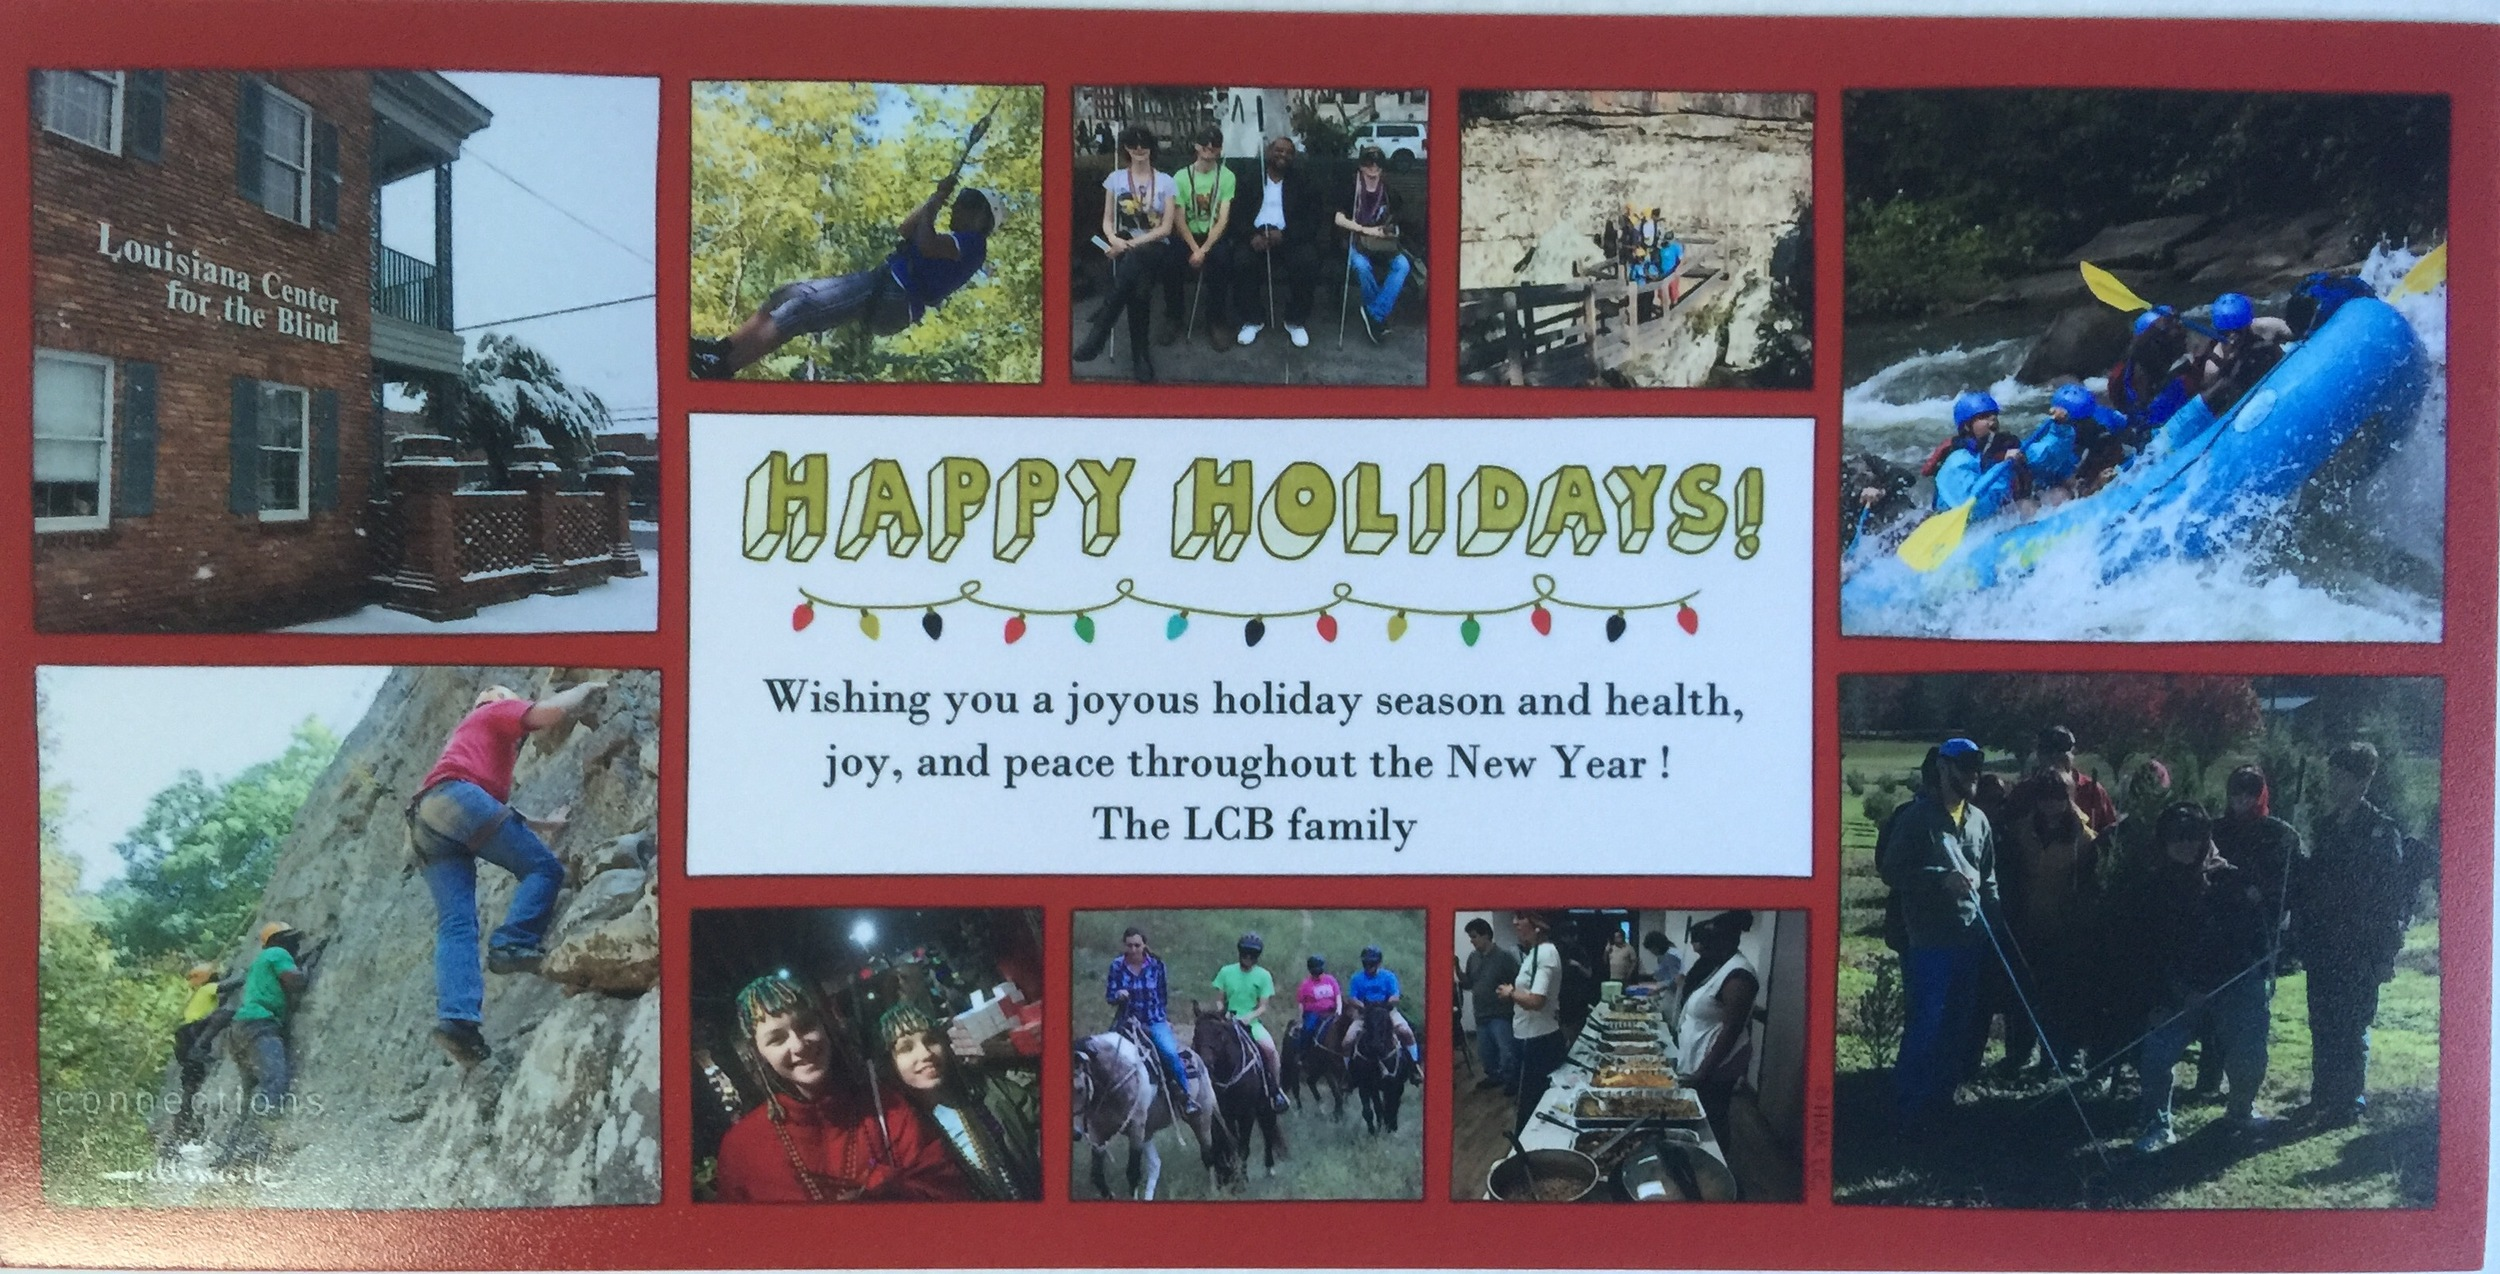 Picture shows the 2016 LCB Christmas card